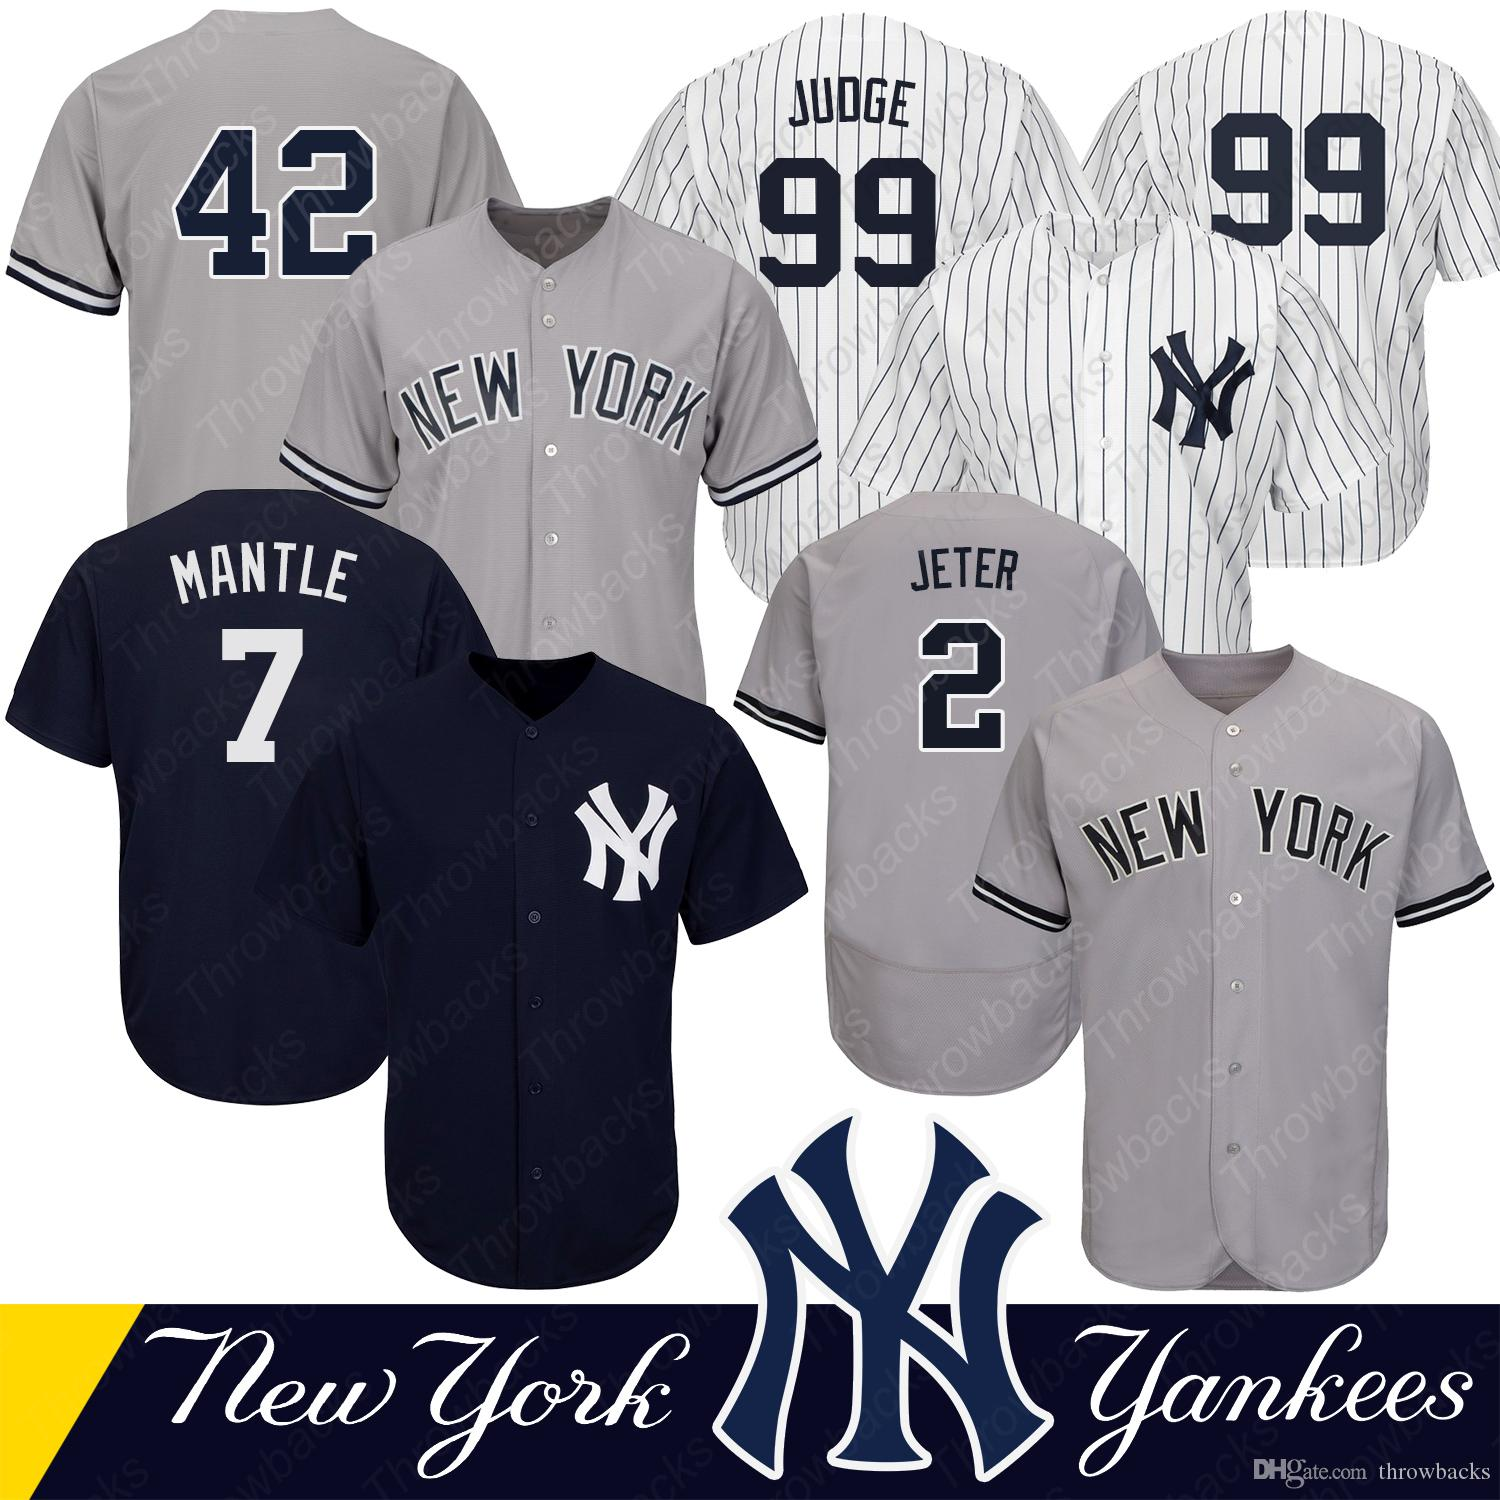 quality design 62ff5 e0c6a New York Men s Yankees jerseys 99 Aaron Judge 42 Mariano Rivera 7 Mickey  Mantle 2 Derek Jeter Baseball Jerseys